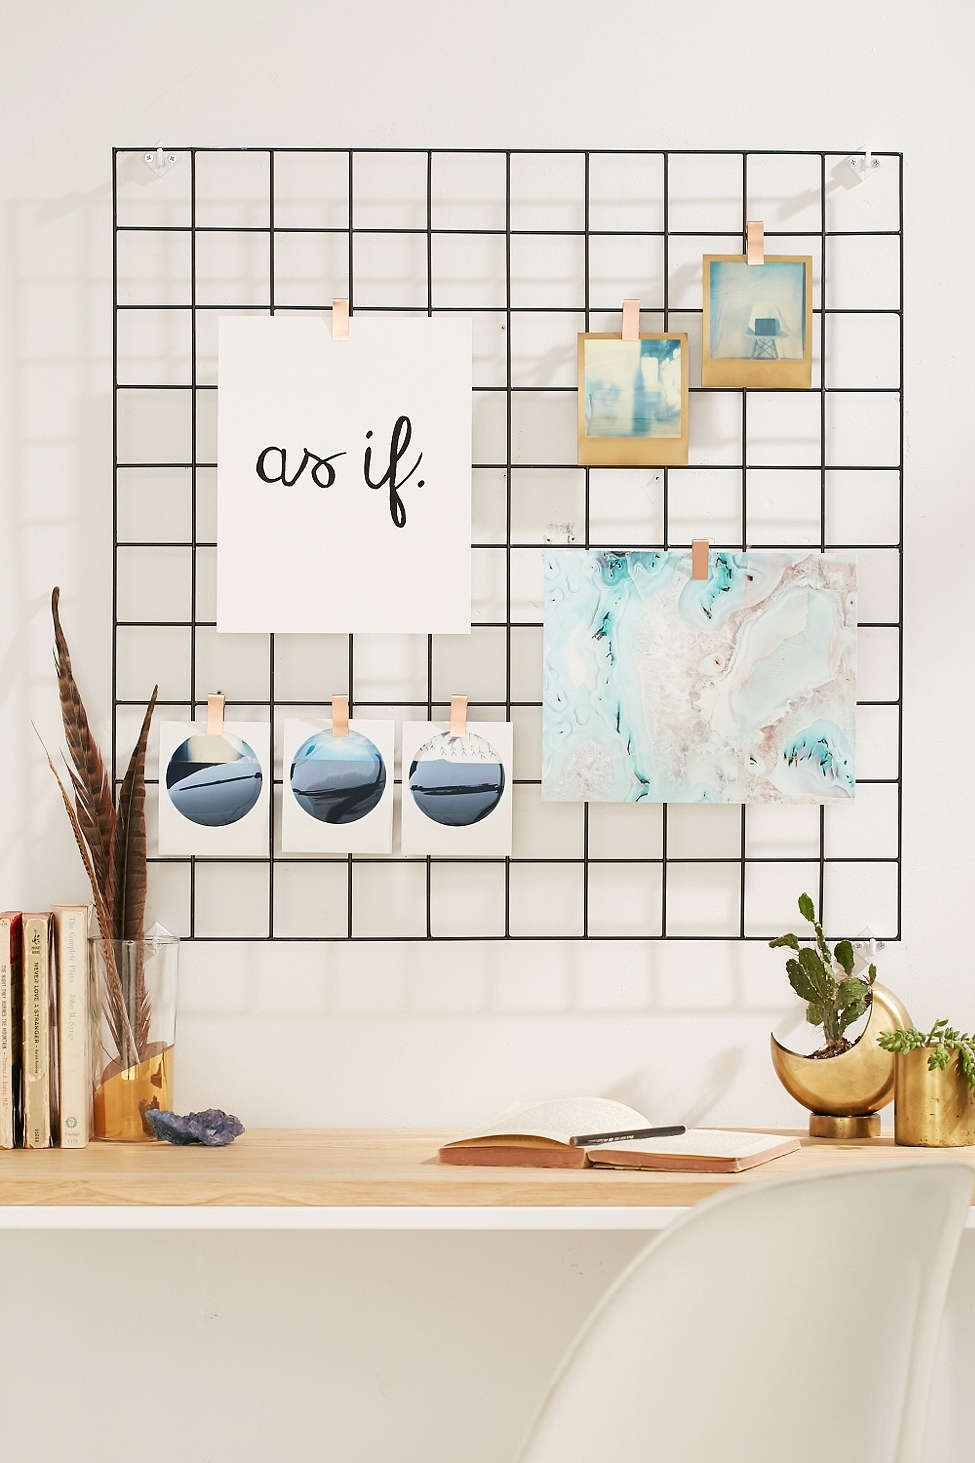 42 Urban Outfitters Wall Art, 10 Things To Buy At Urban Outfitters With 2018 Urban Outfitters Wall Art (Gallery 19 of 20)